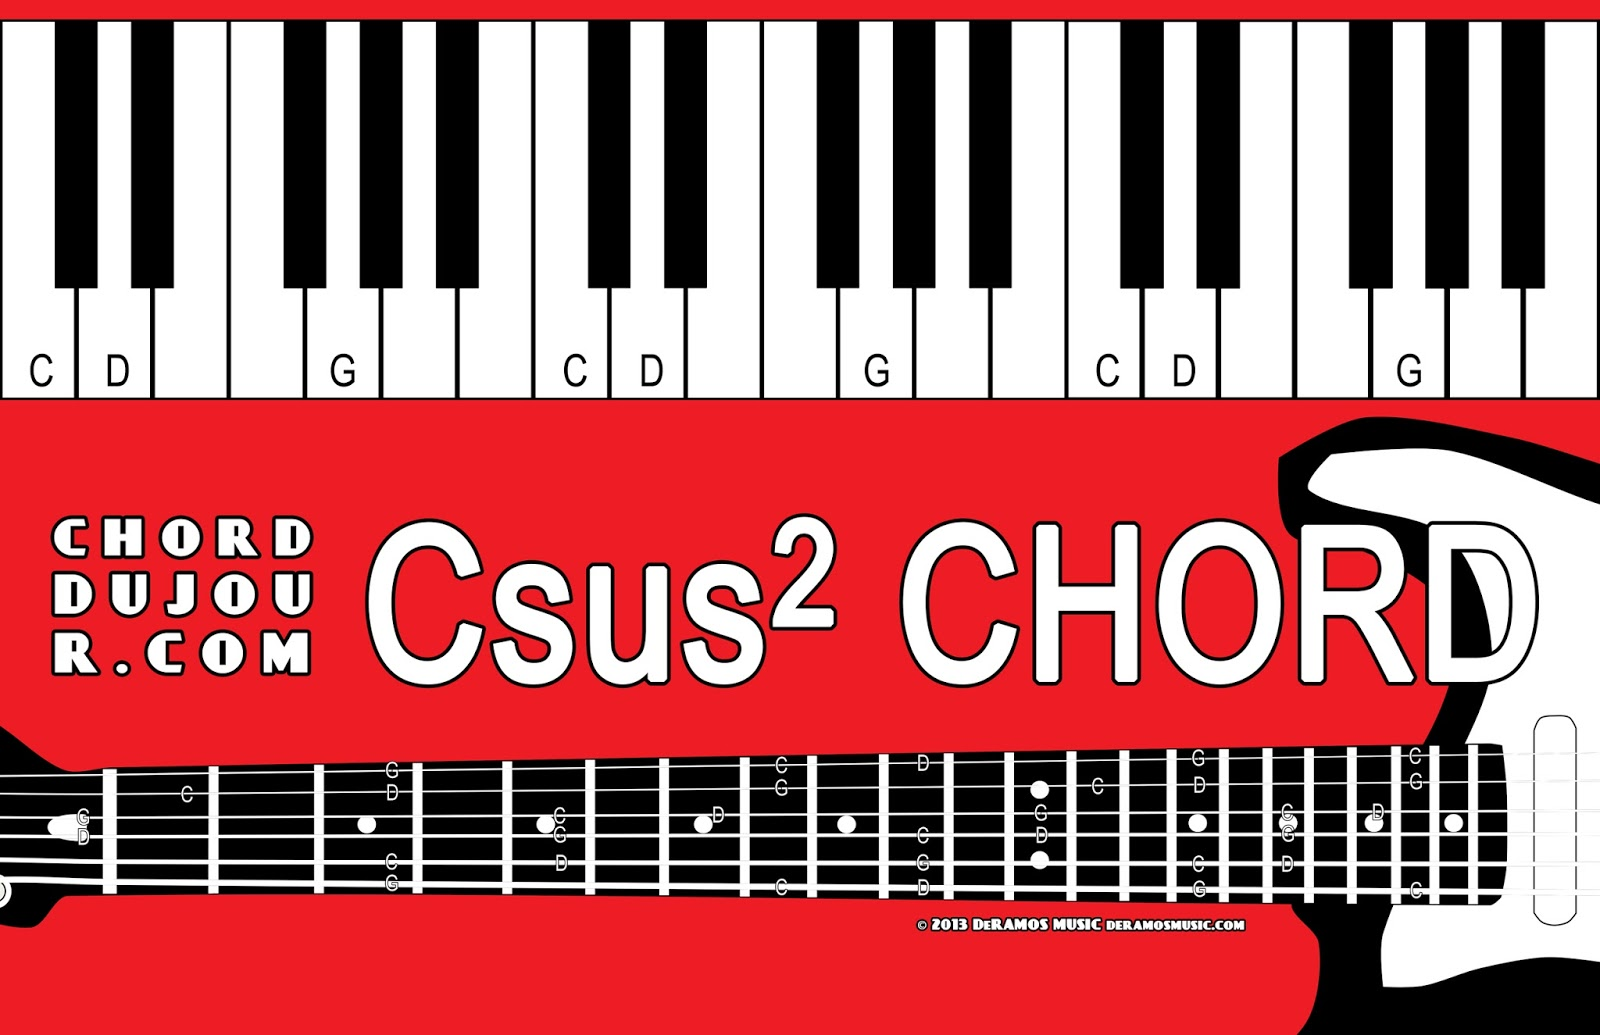 Chord du jour dictionary csus2 chord dictionary csus2 chord hexwebz Image collections